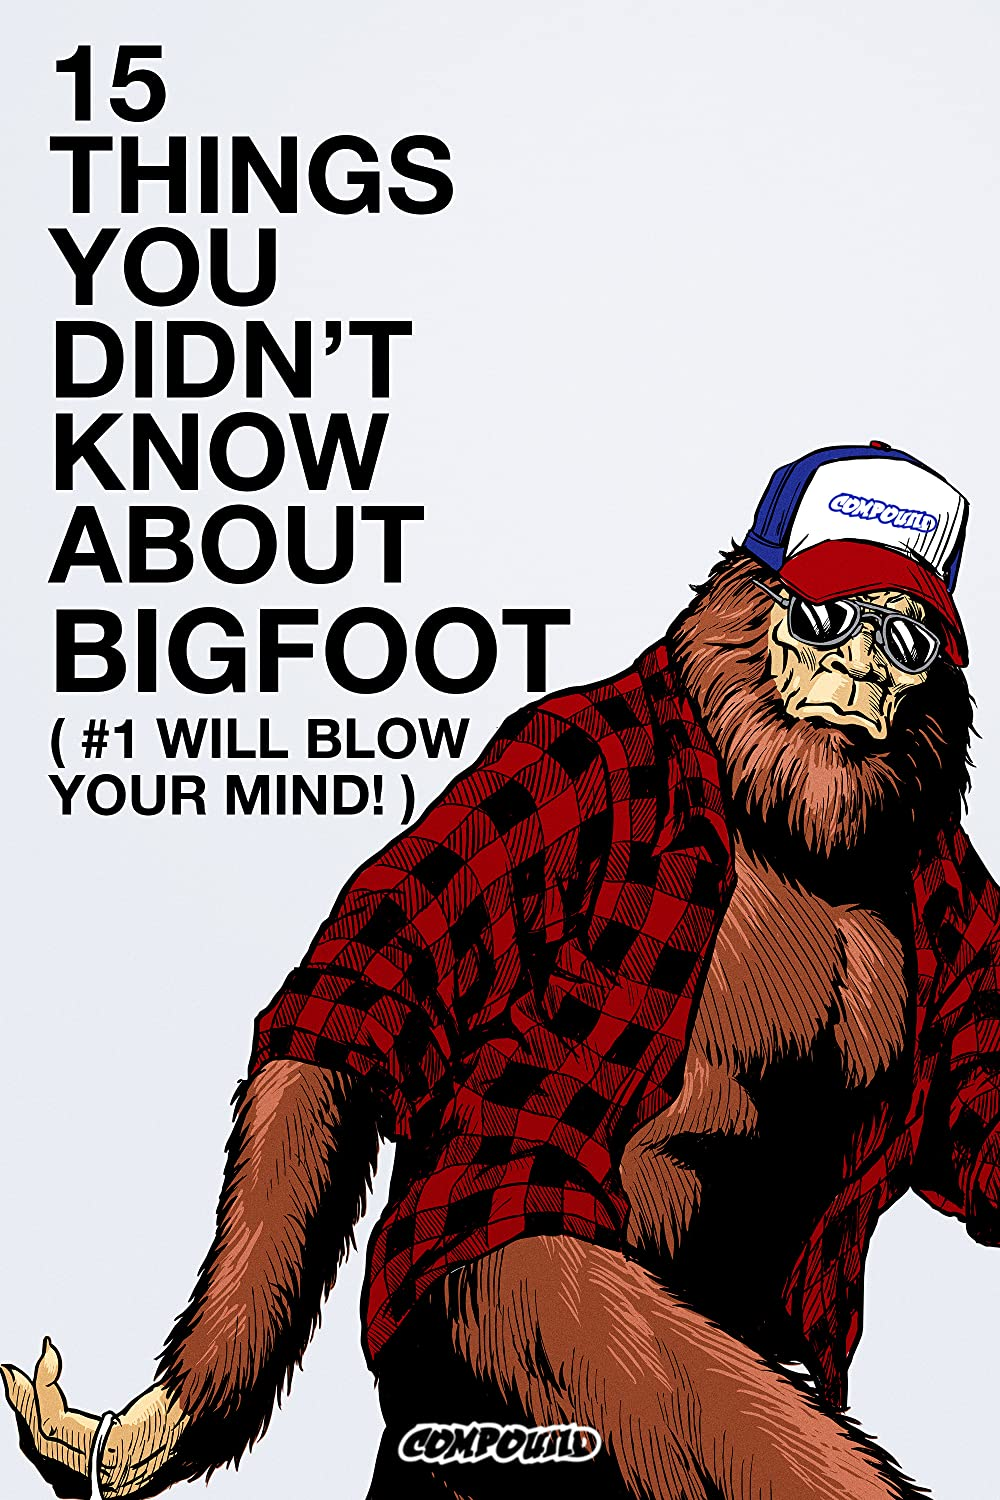 Watch 15 Things You Didn't Know About Bigfoot (#1 Will Blow Your Mind) Online